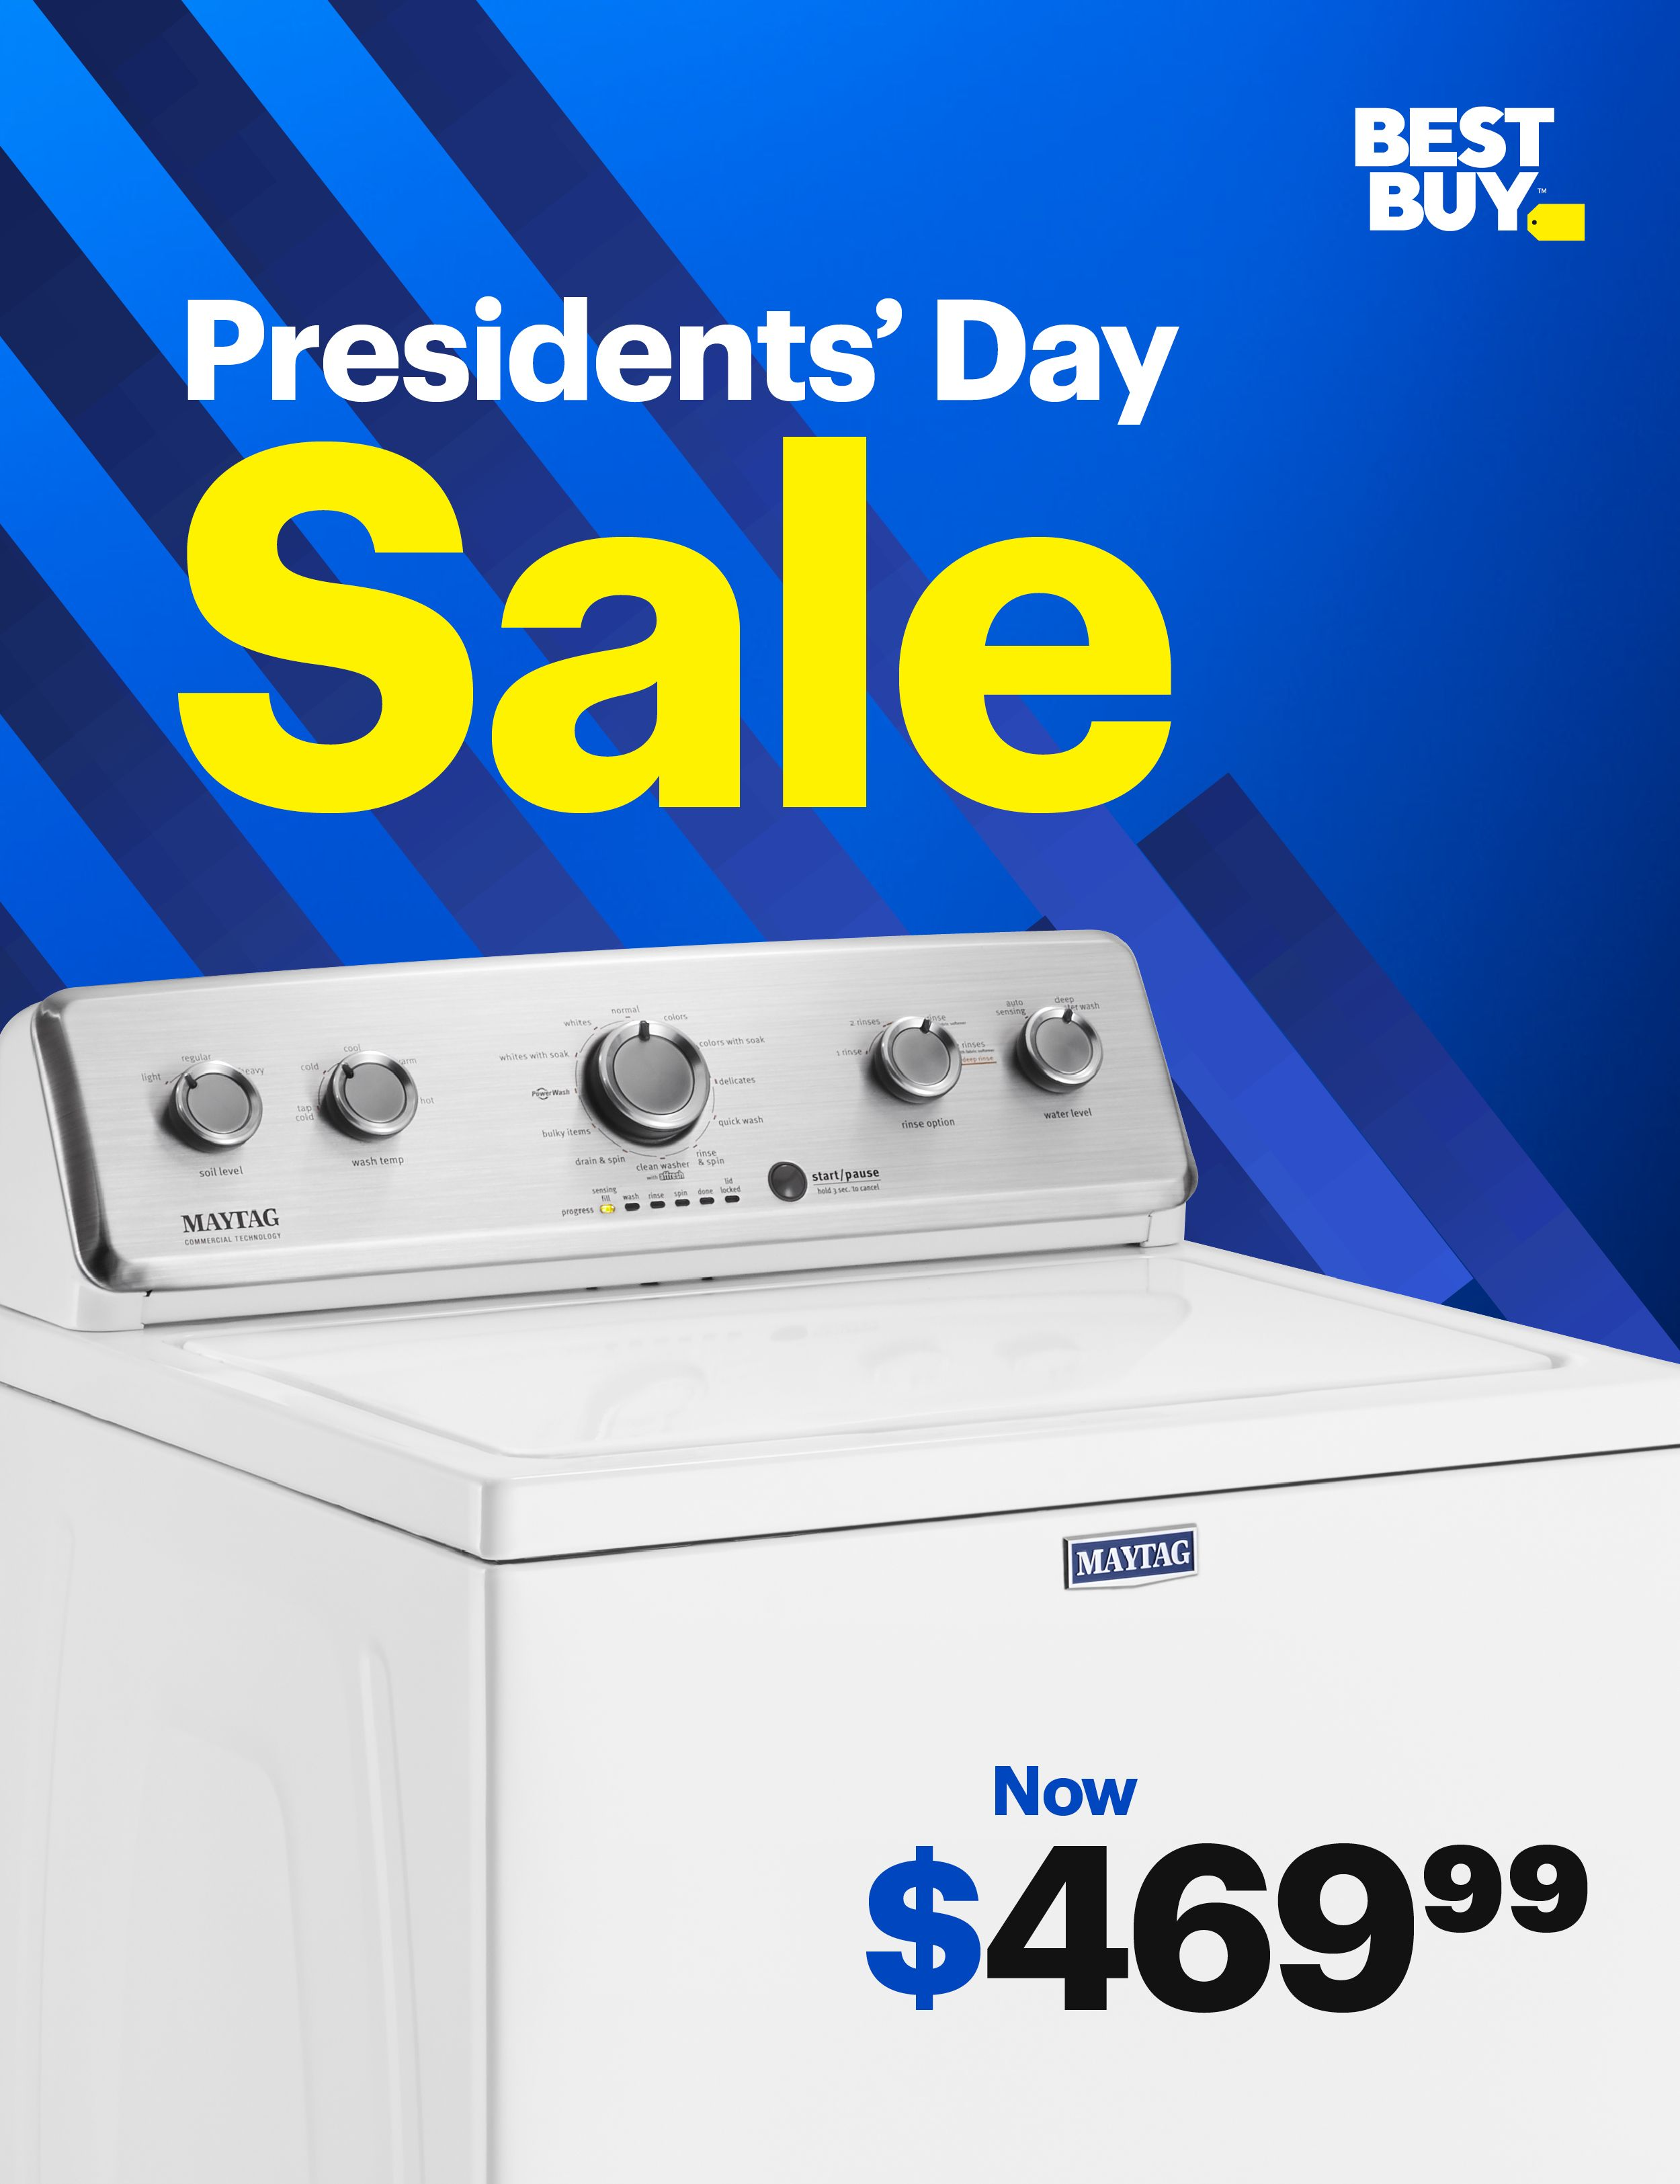 Save Up To 40 On Appliance Hottest Deals Featuring Maytag And Whirlpool Appliances So If You Re Looking For A New Washer Look In 2020 Cool Things To Buy Presidents Day Sale Washer